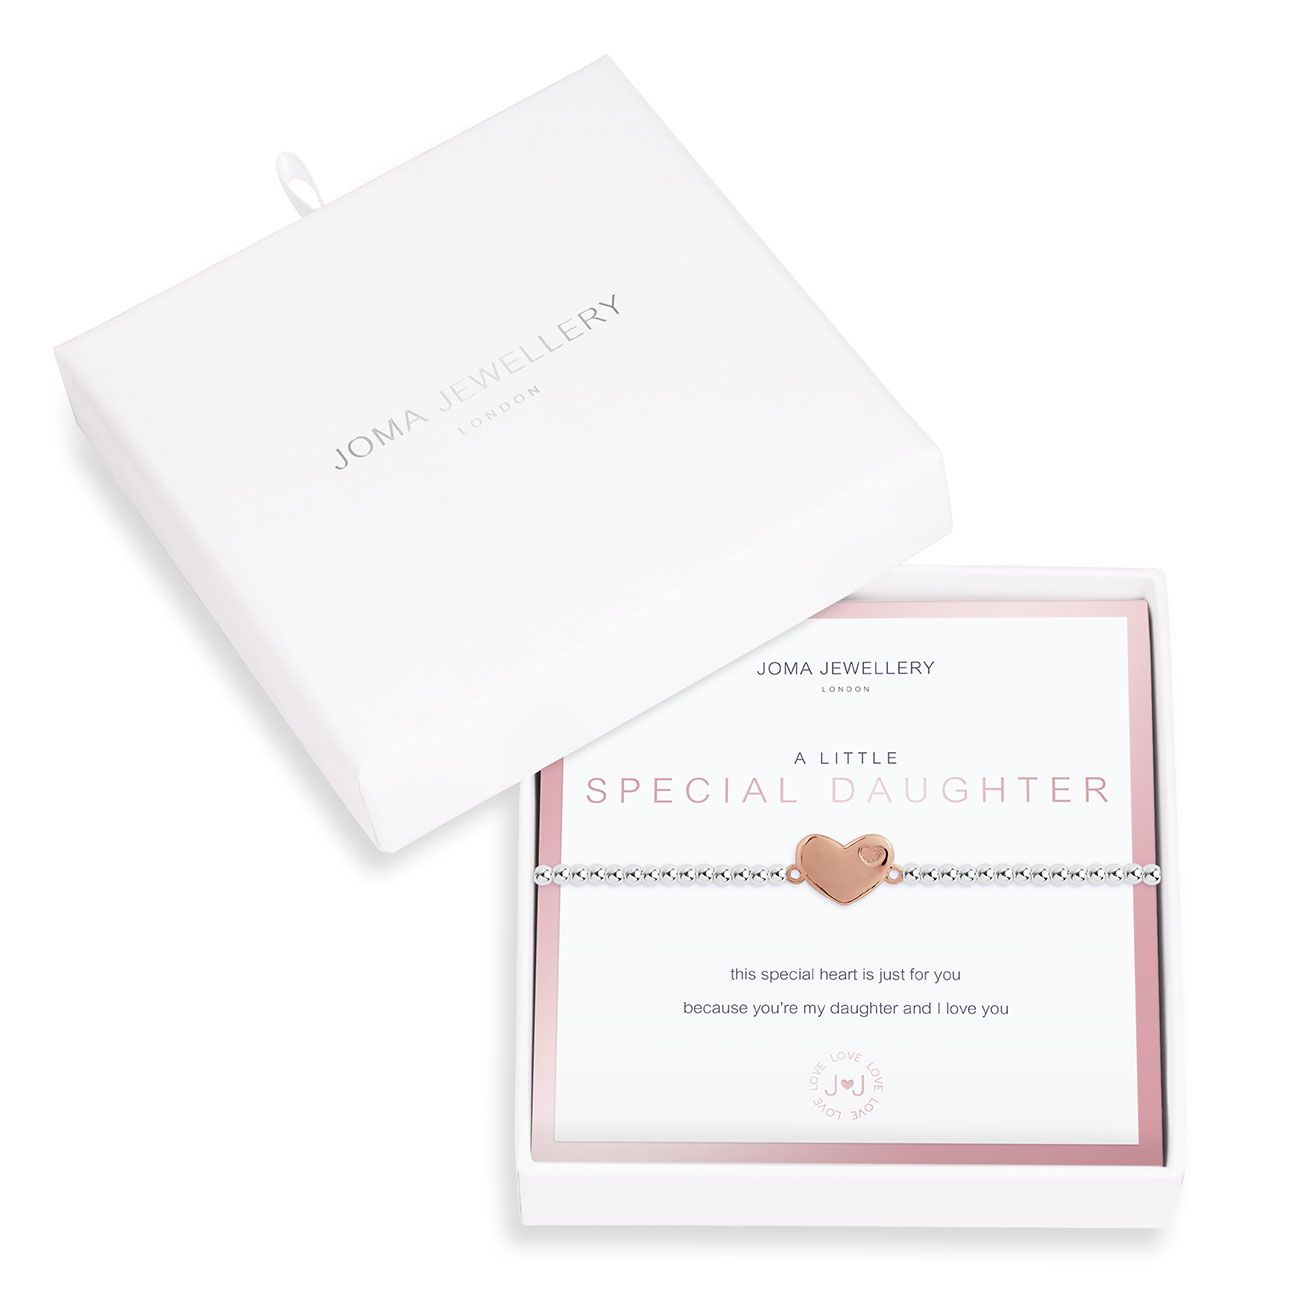 Joma a little Special Daughter Boxed Bracelet - heart | More Than Just A Gift